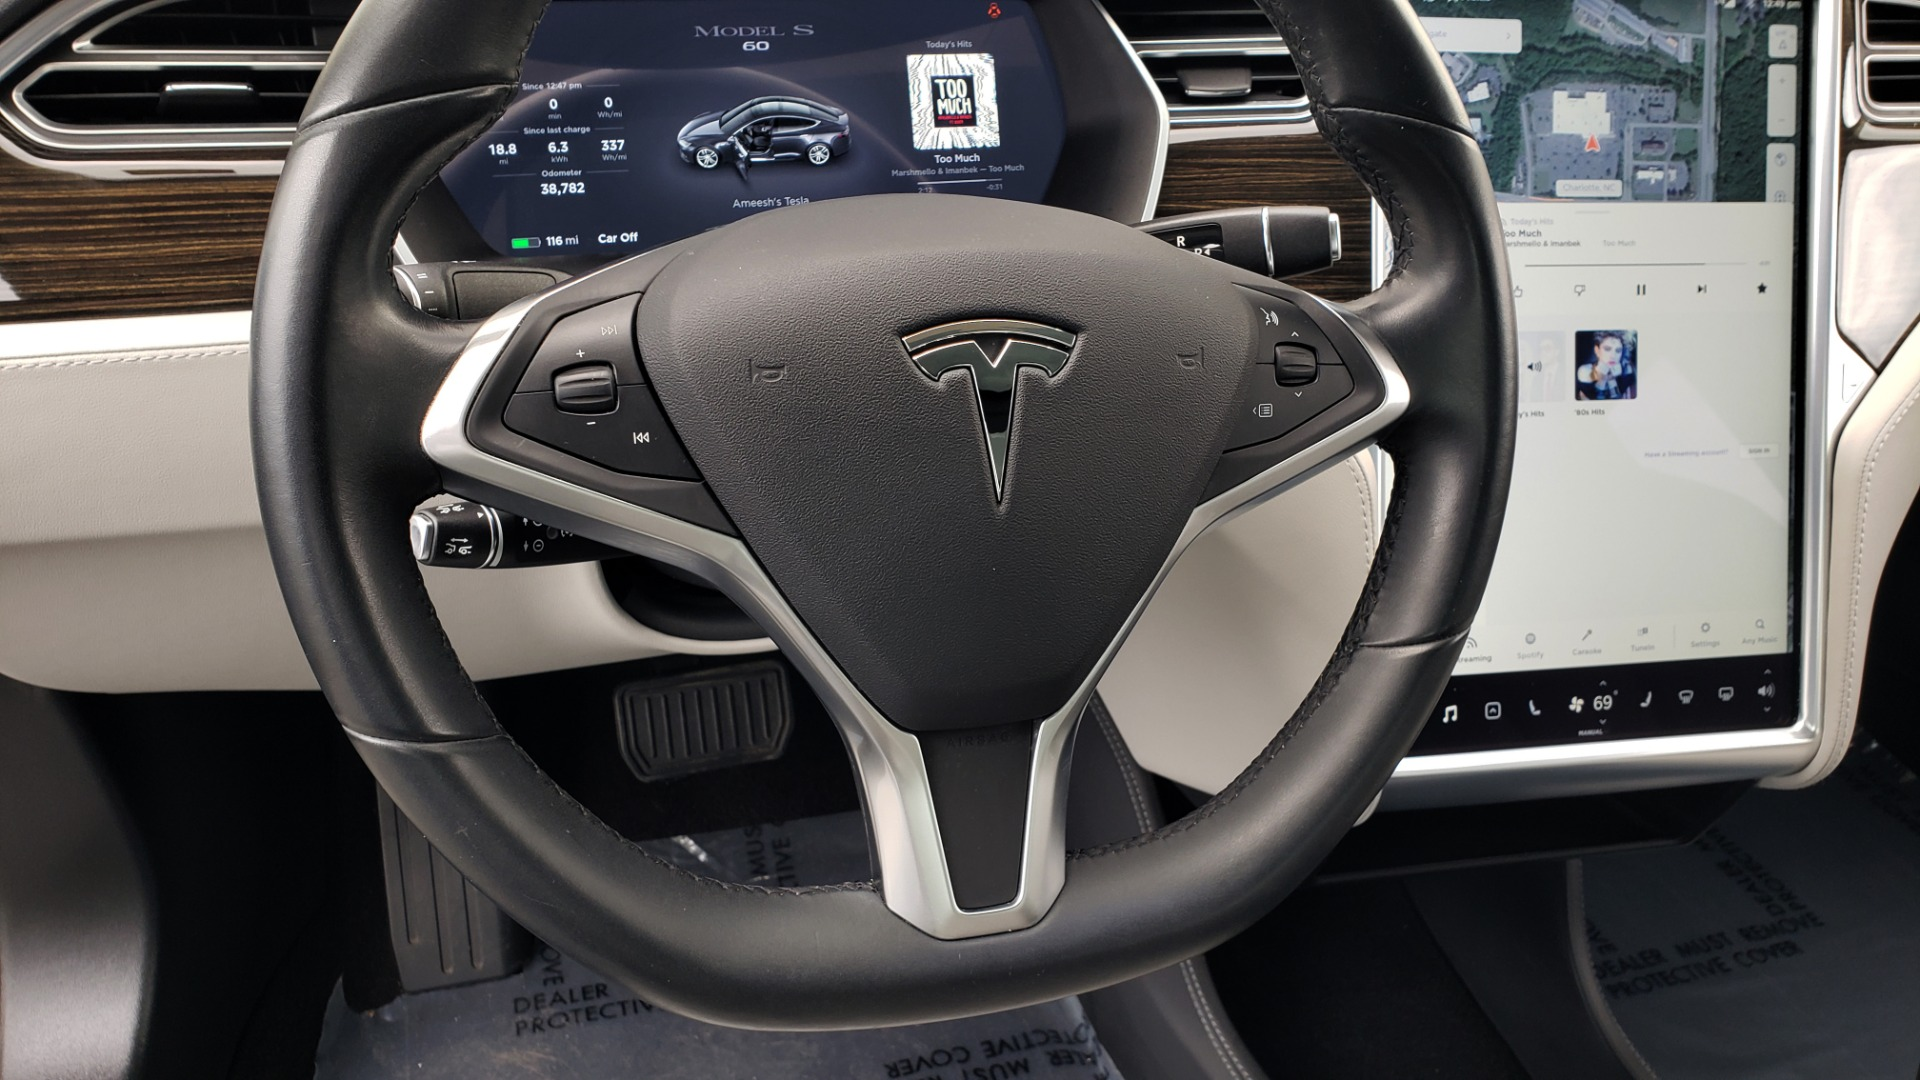 Used 2014 Tesla MODEL S 60 kWh BATTERY / TECH / NAV / SUBZERO / SUNROOF / REARVIEW for sale Sold at Formula Imports in Charlotte NC 28227 33